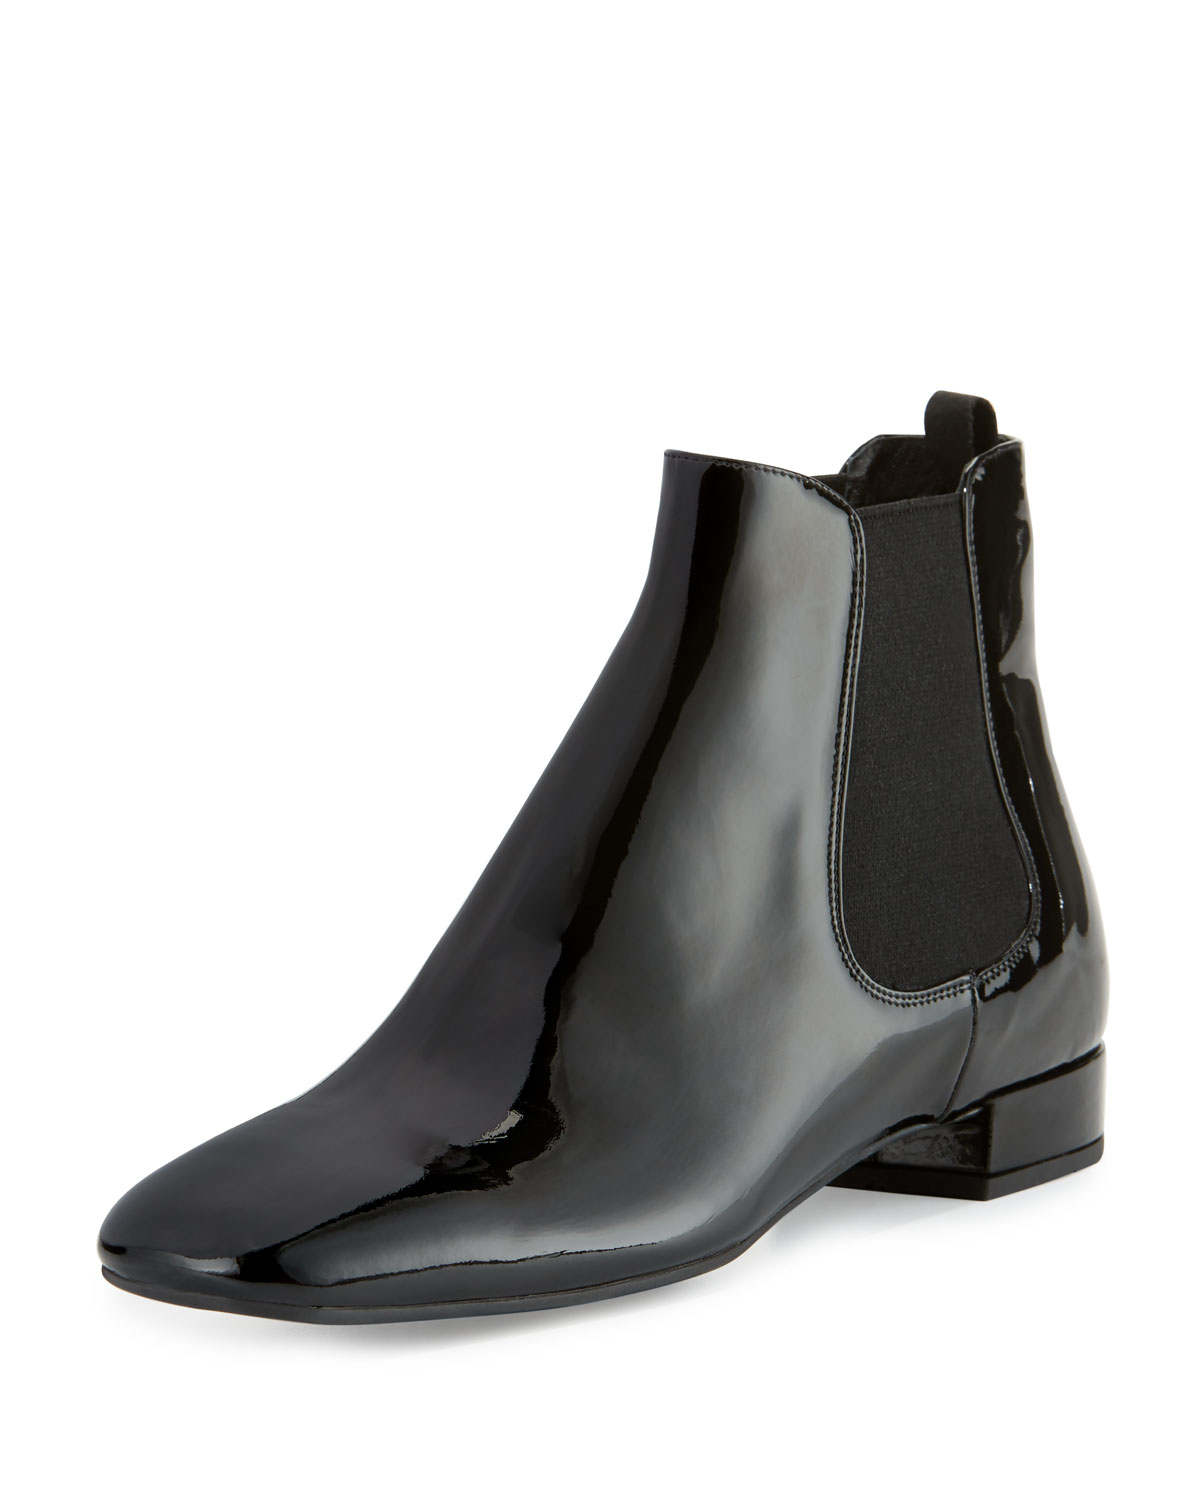 eb495d2aacfe8b Prada Patent Leather 20mm Chelsea Boots, Black (Nero) | Neiman Marcus